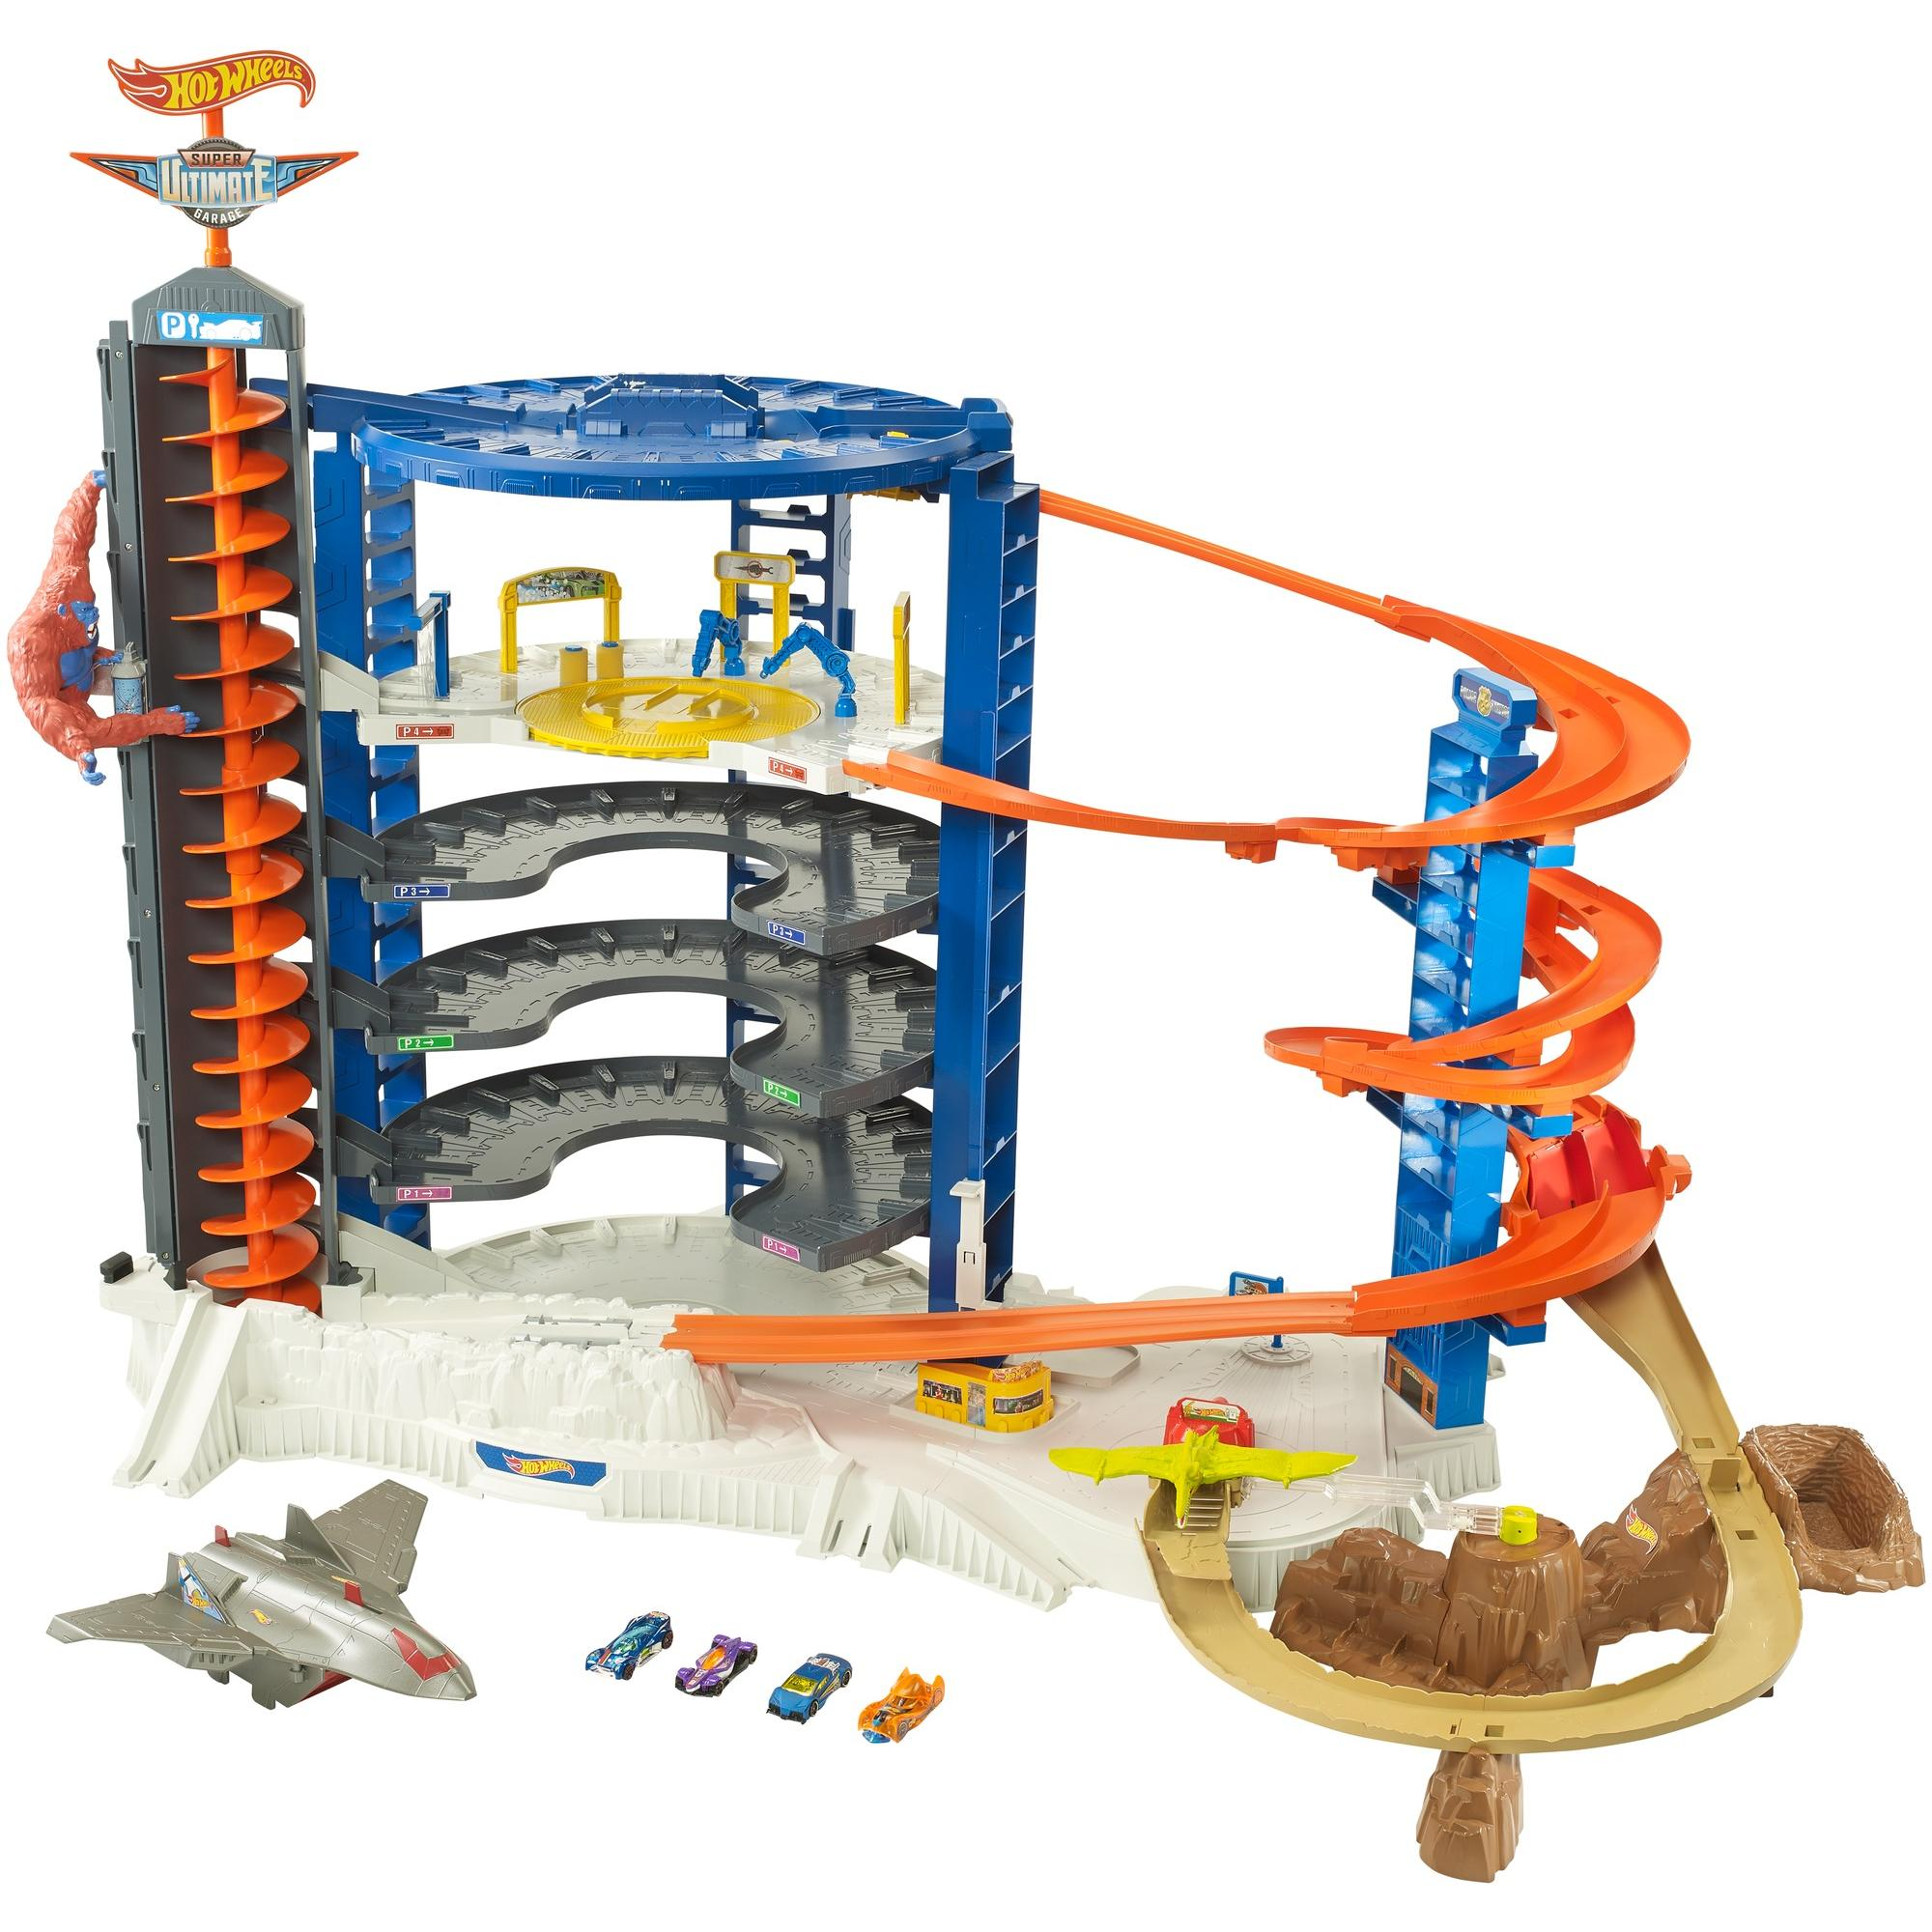 Hot Wheels Super Ultimate Garage Play Set + Accessories, Walmart Exclusive by Mattel